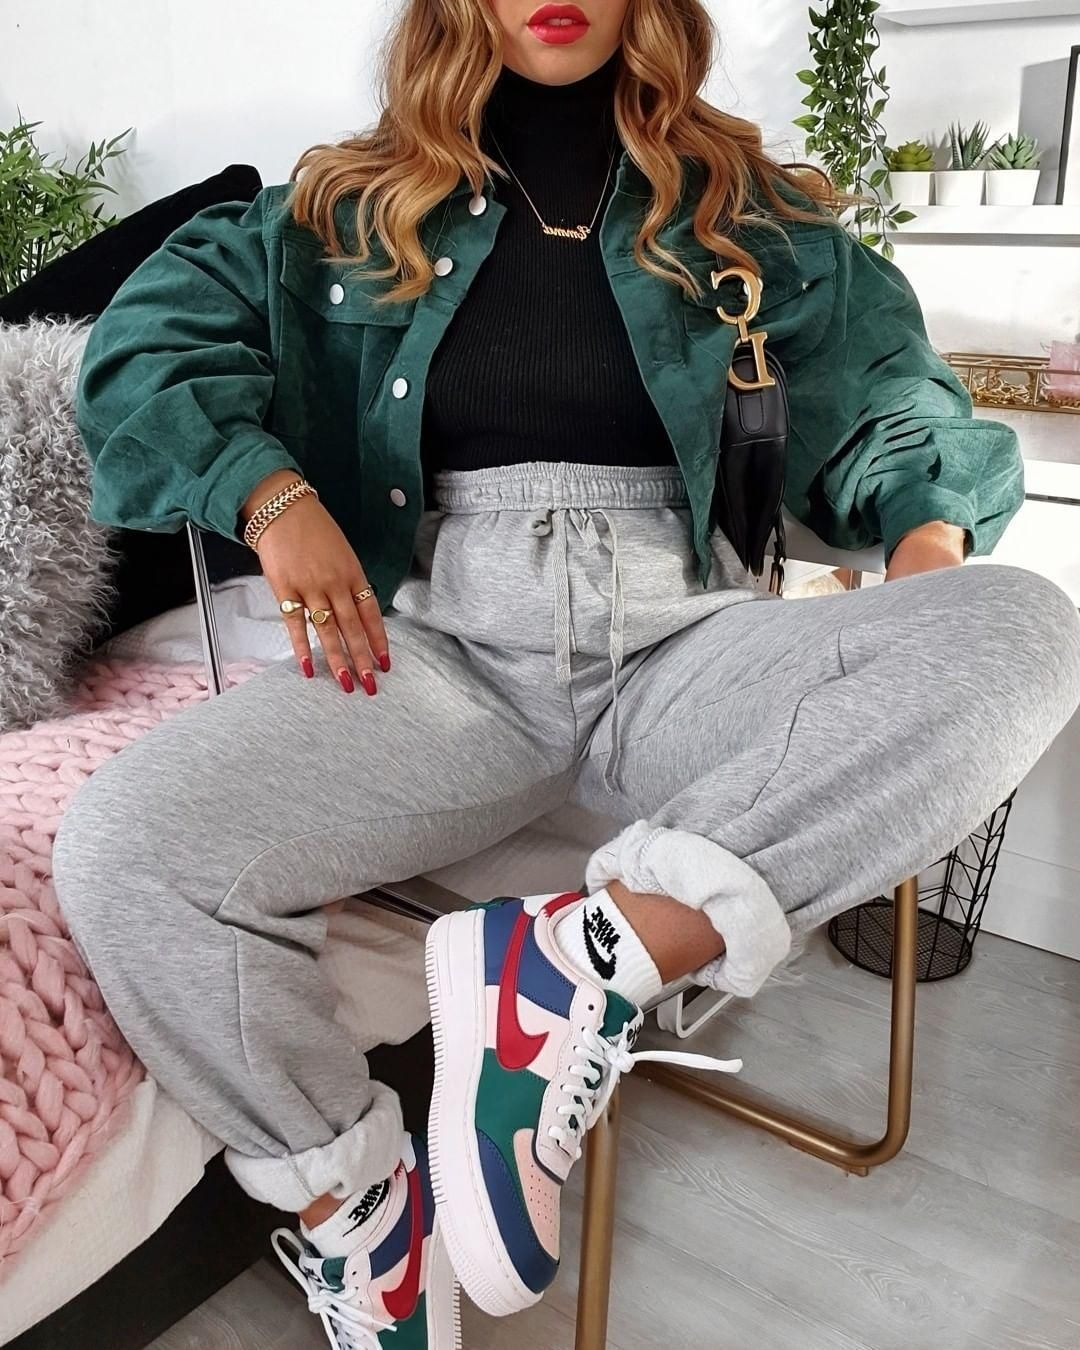 Nike Baskets Nike Air Force 1 Shadow in navy blue and pink Best Blog – trendy outfits